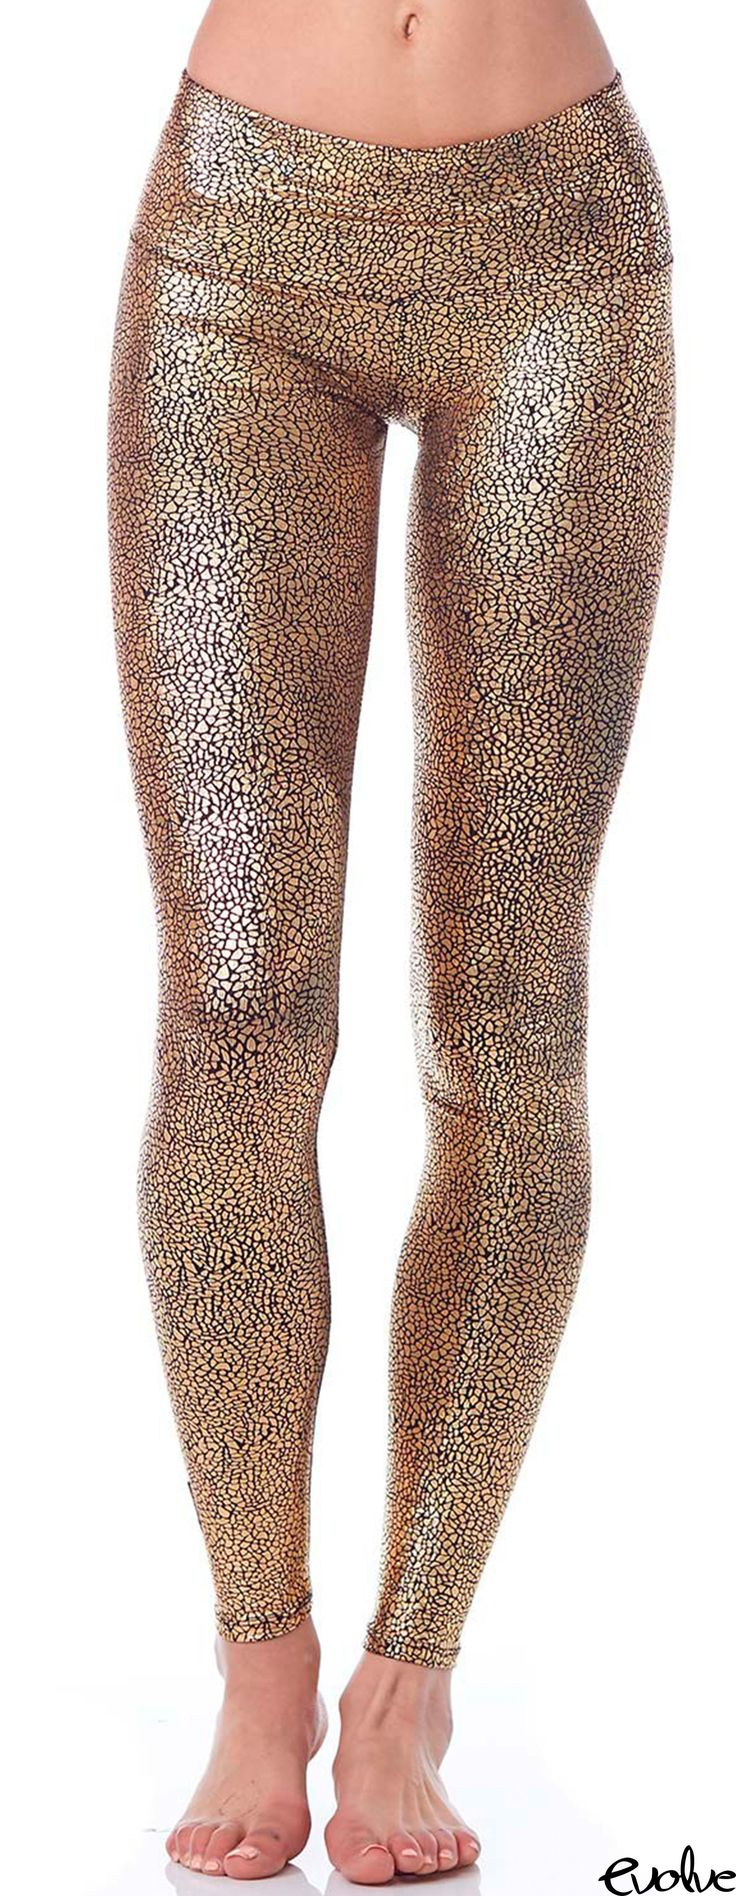 It's pretty obvious why these leggings are so popular - Gold + Sparkles = Win! Shop Purusha People now at www.evolvefitwear.com.